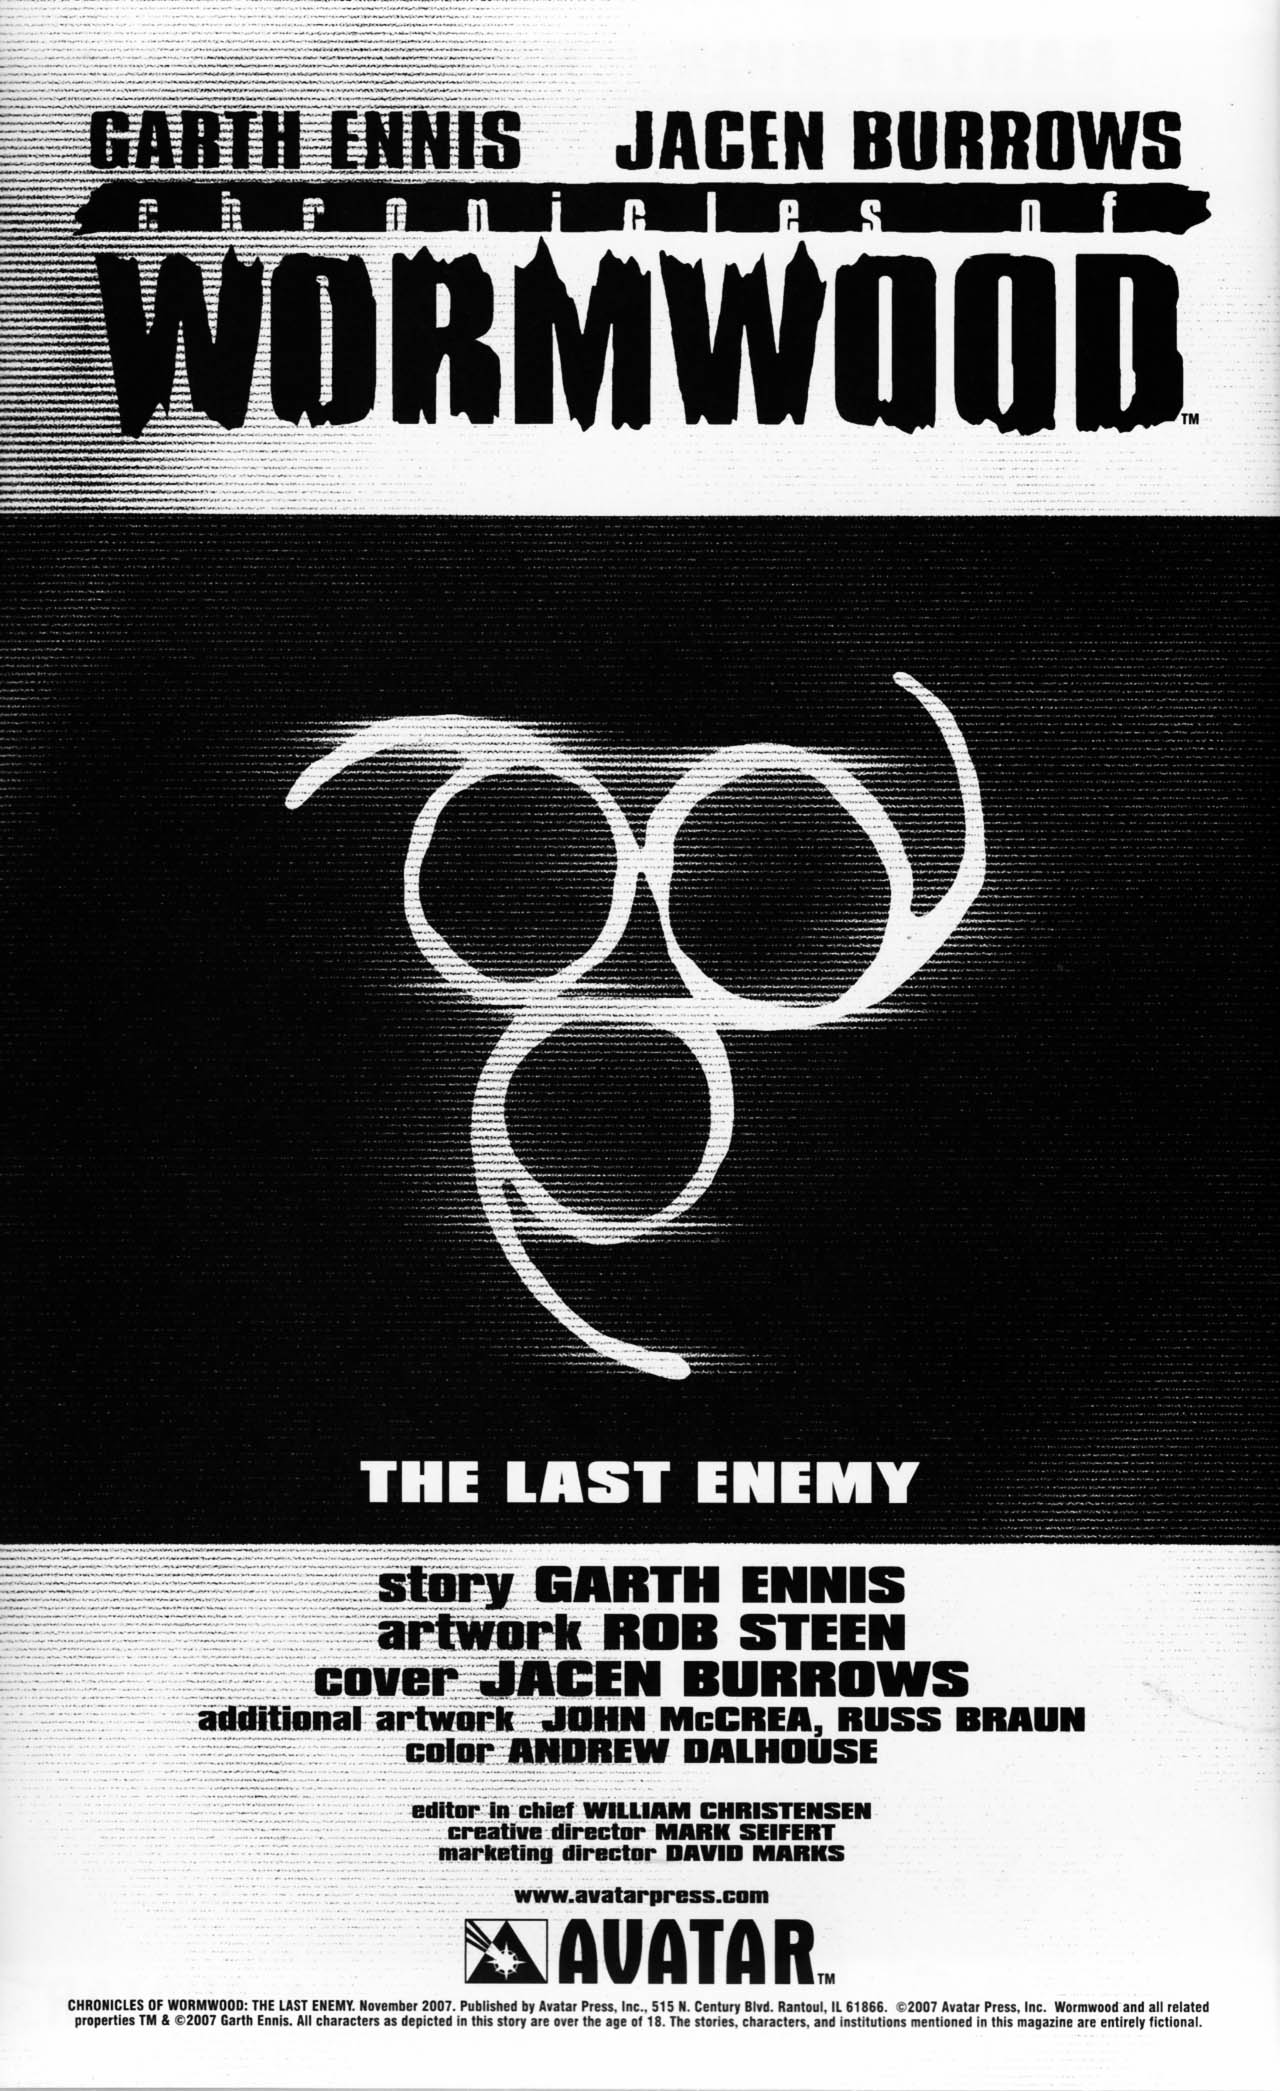 Read online Chronicles of Wormwood: The Last Enemy comic -  Issue # Full - 2